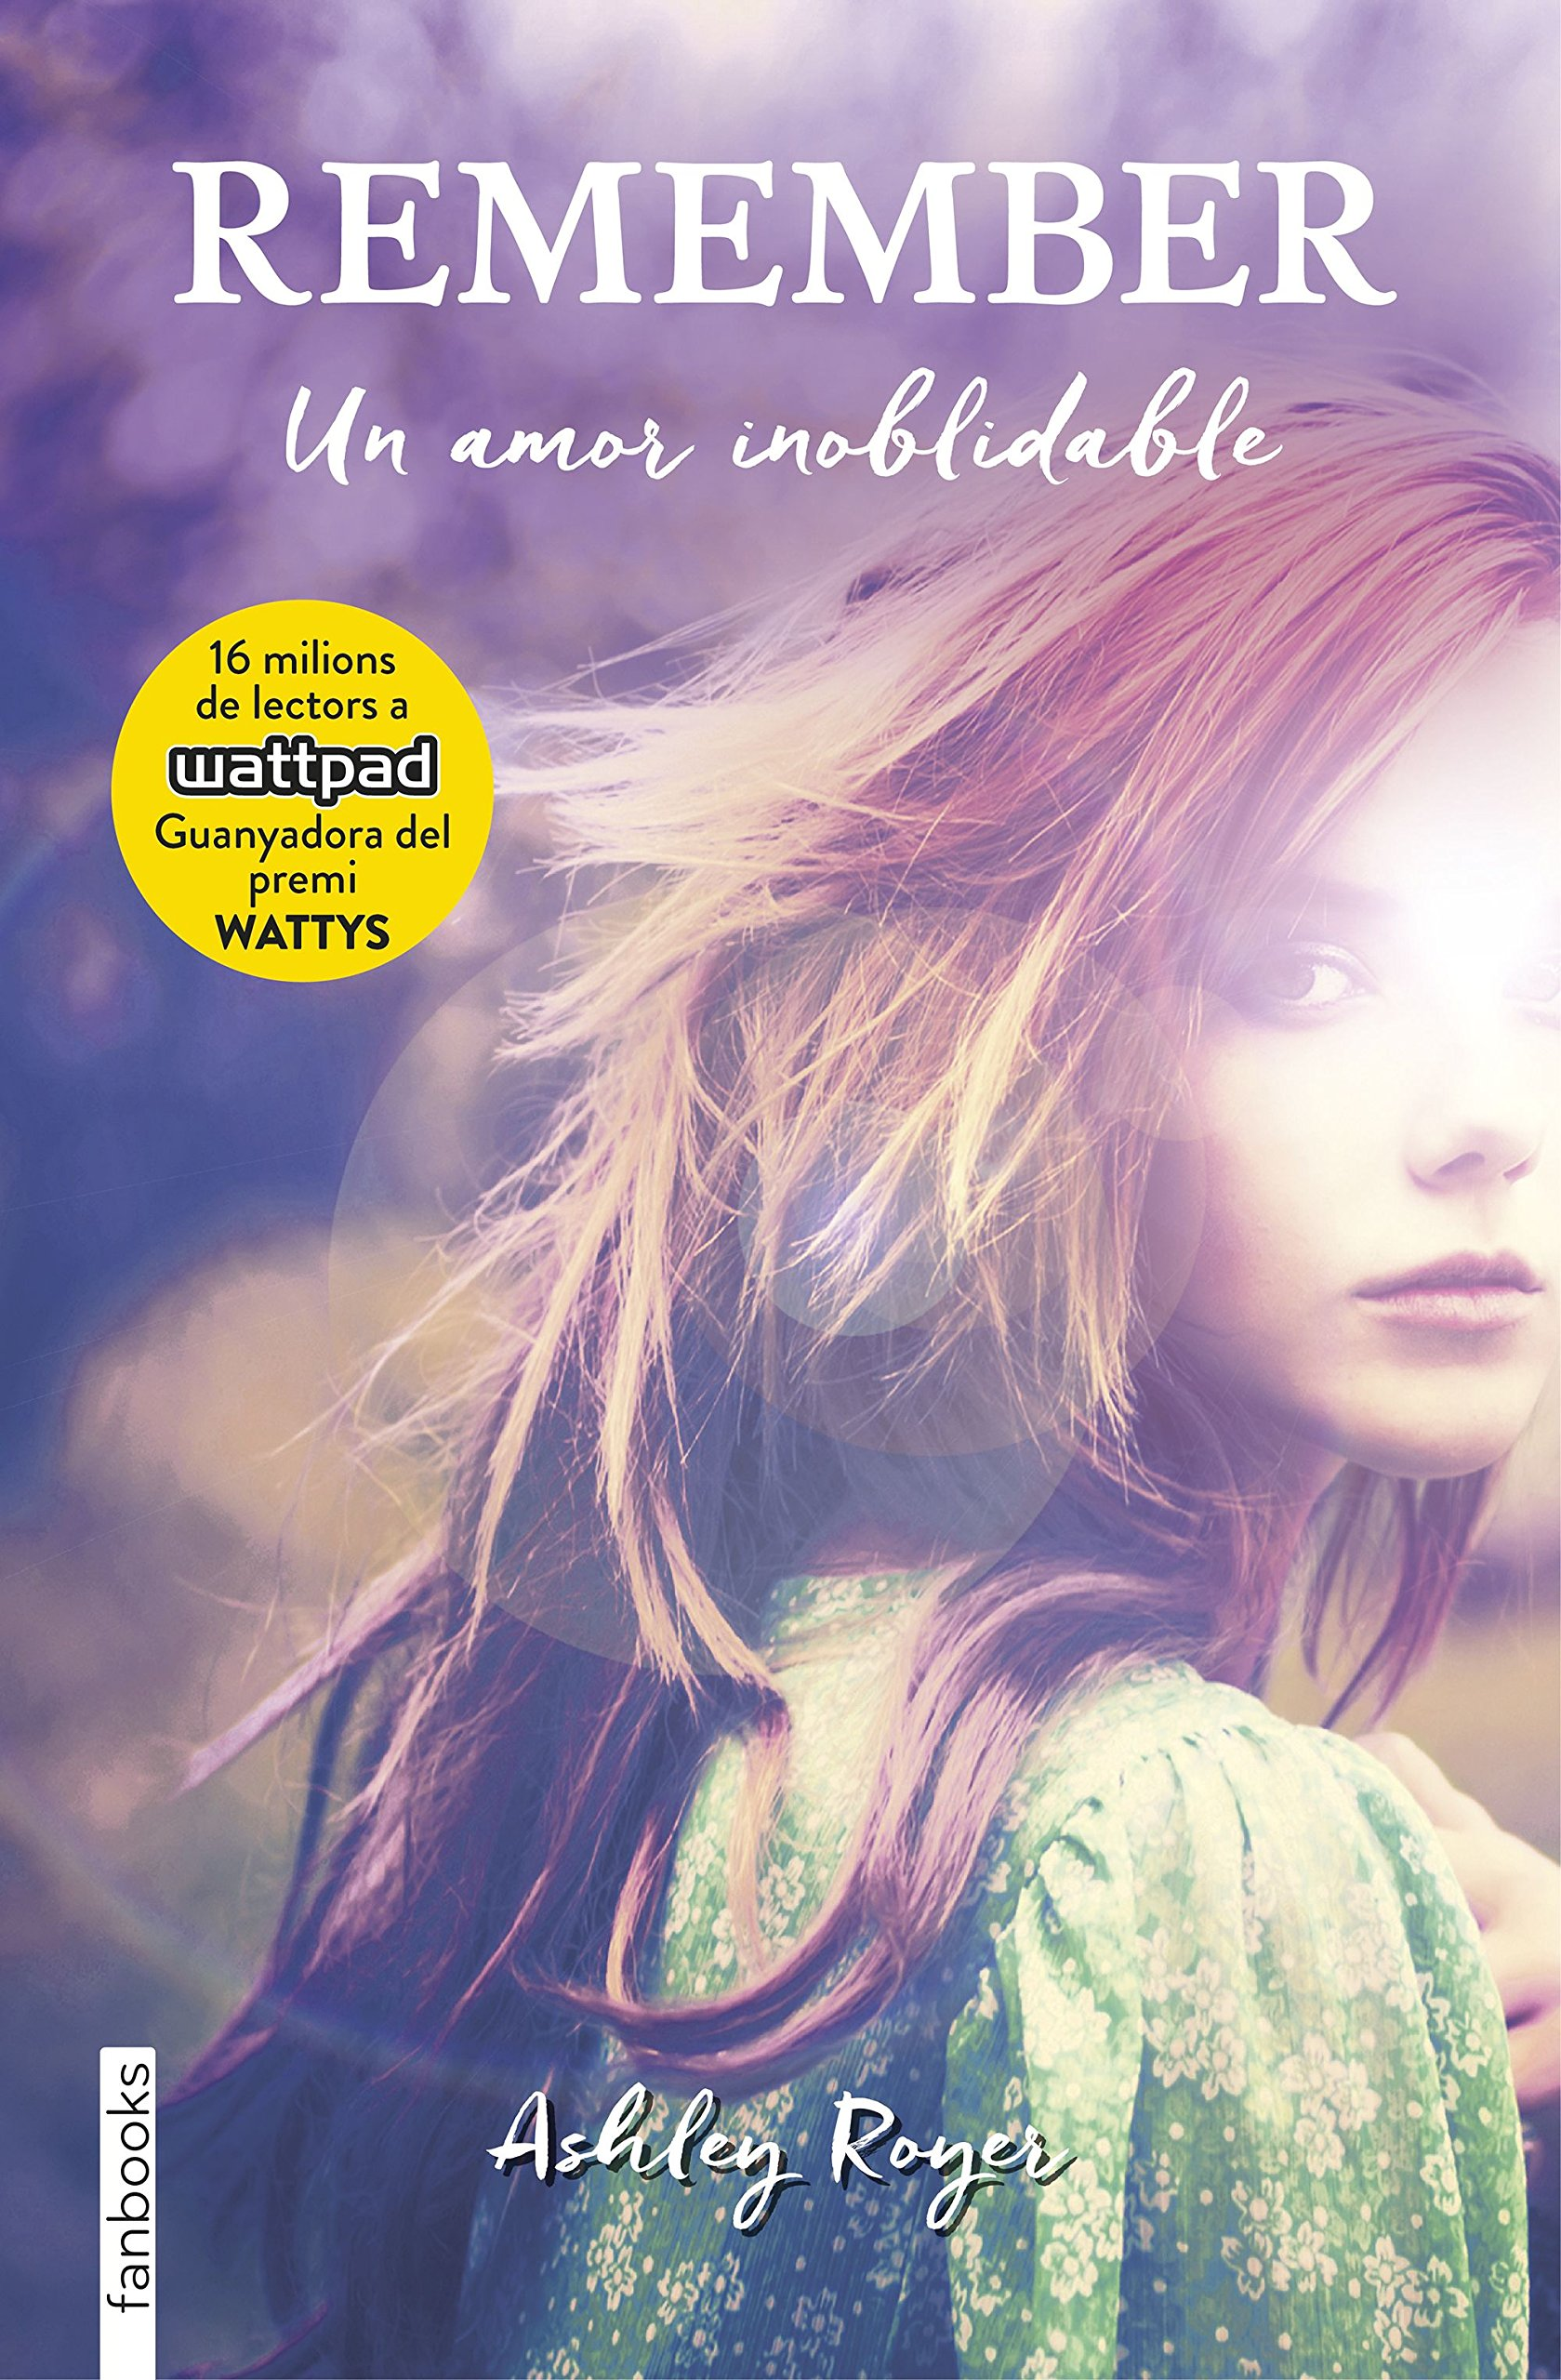 Un amor inoblidable (FICCIÓ): Amazon.es: Ashley Royer, Esther Roig Giménez: Libros